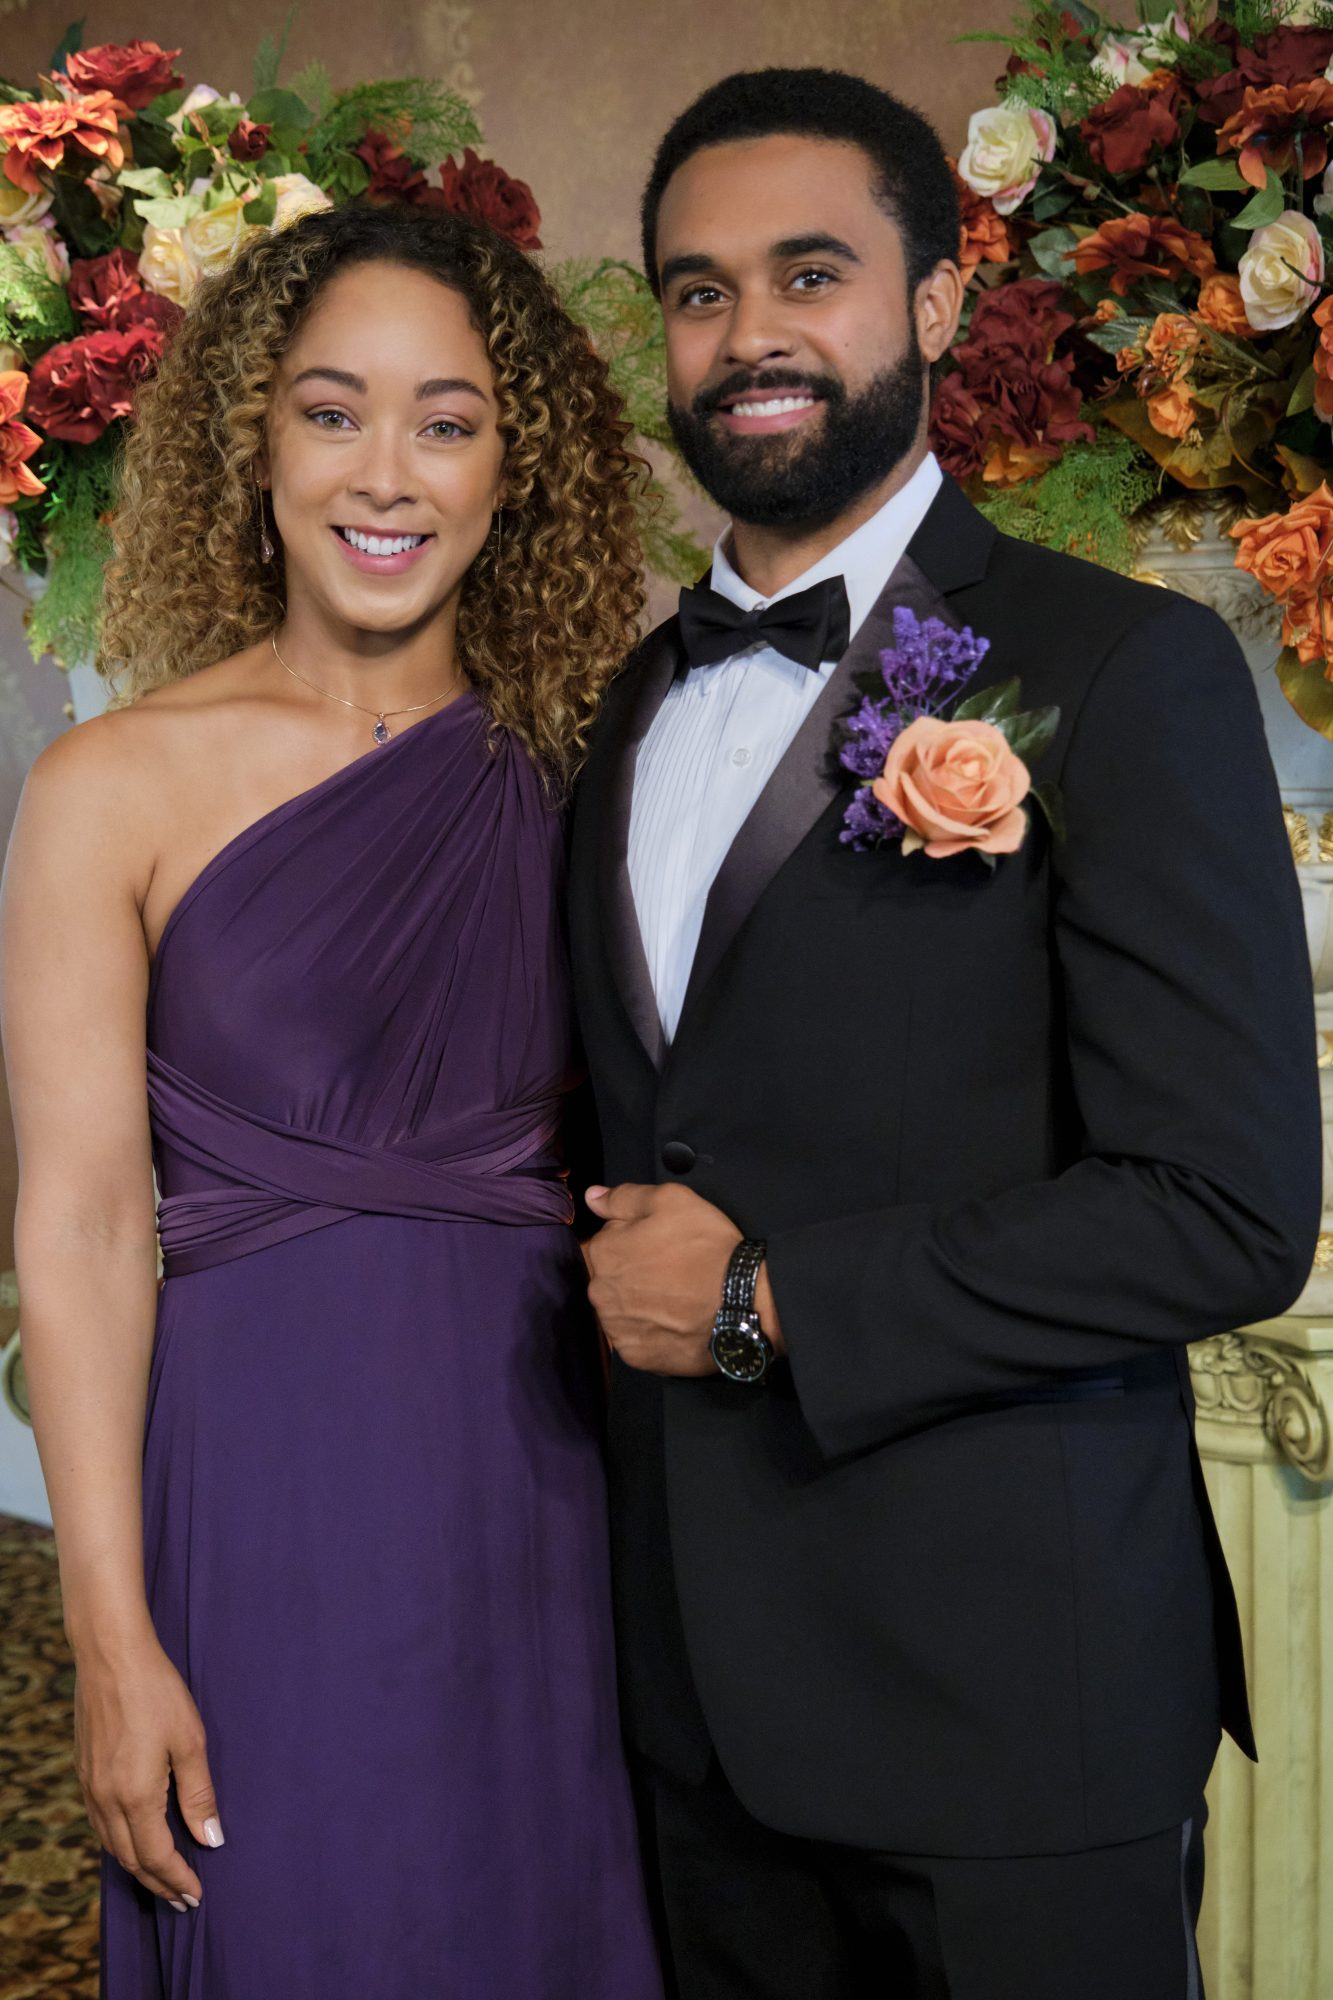 man in suit and girl in purple dress